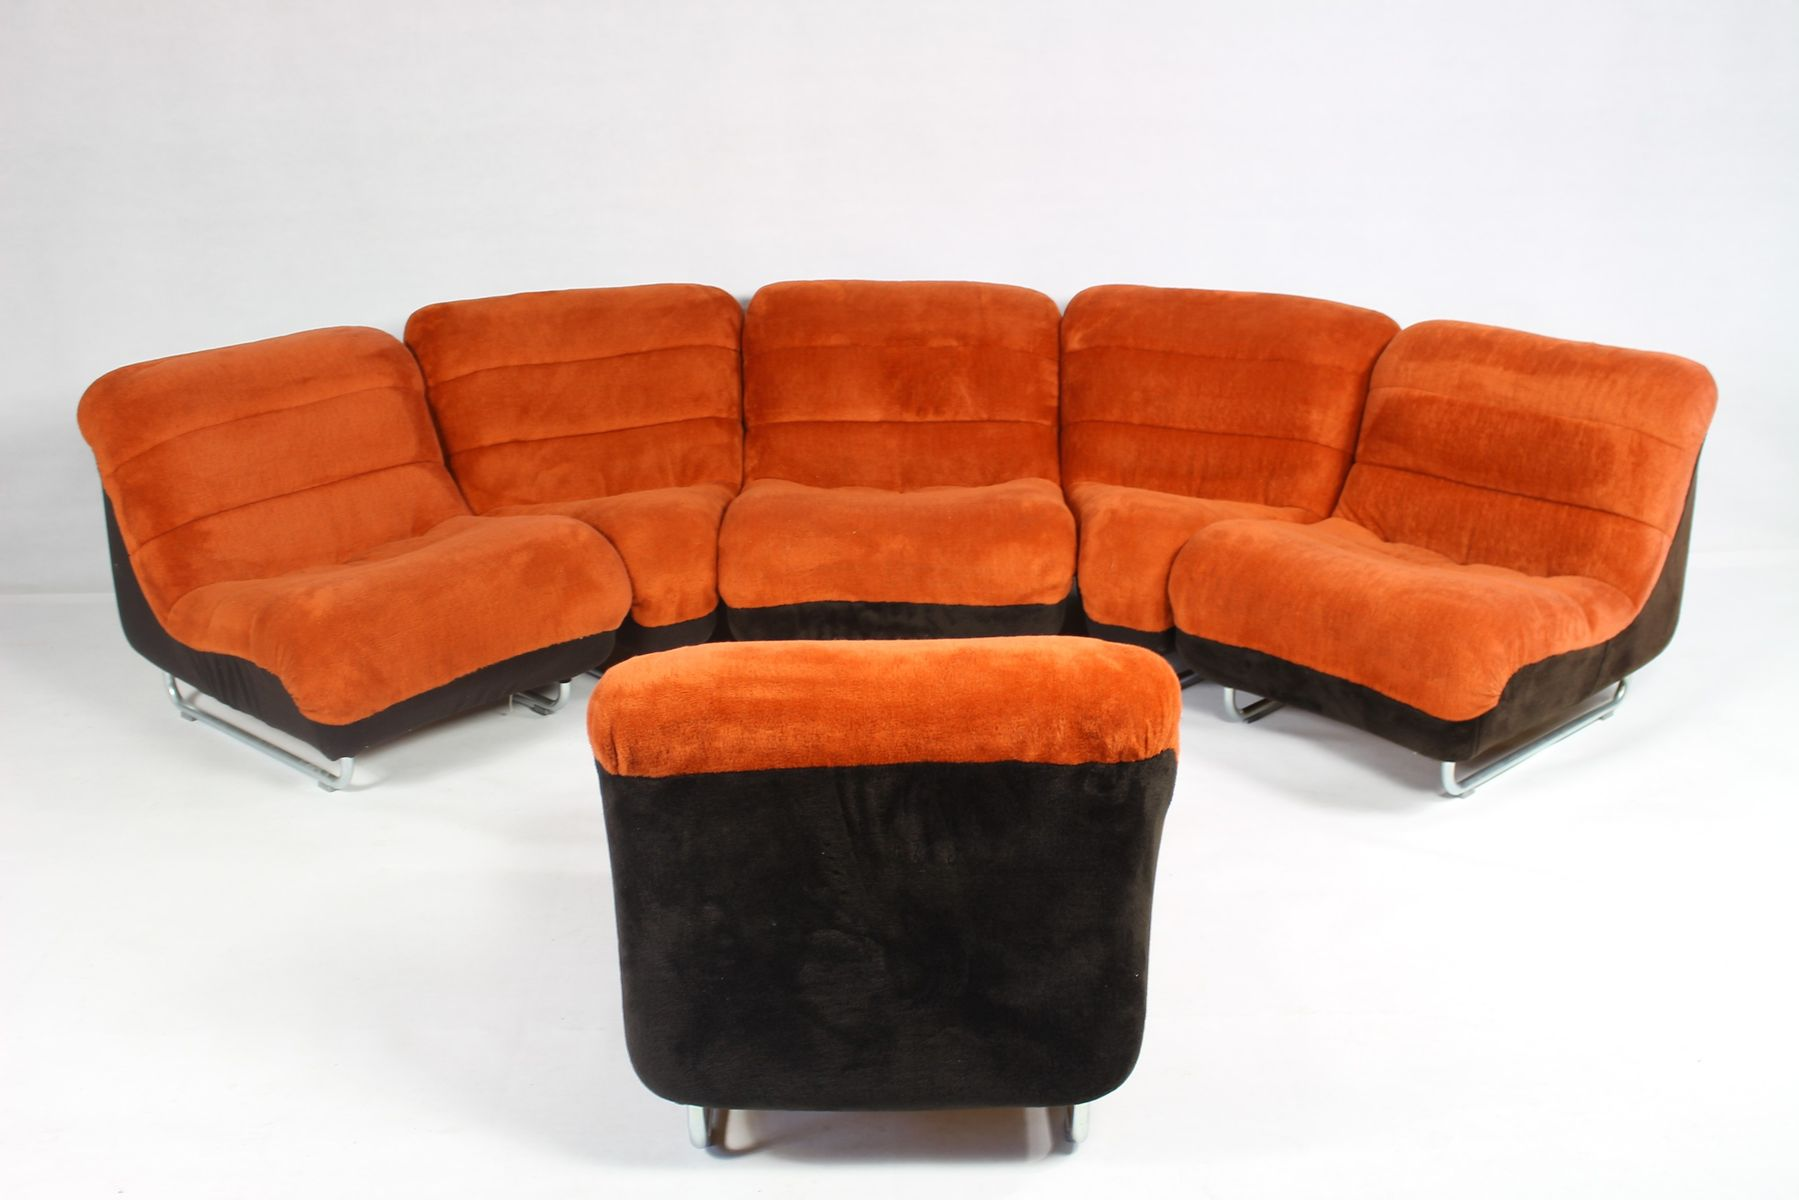 modulares sofa von rodney kinsman f r overman 1970er bei pamono kaufen. Black Bedroom Furniture Sets. Home Design Ideas